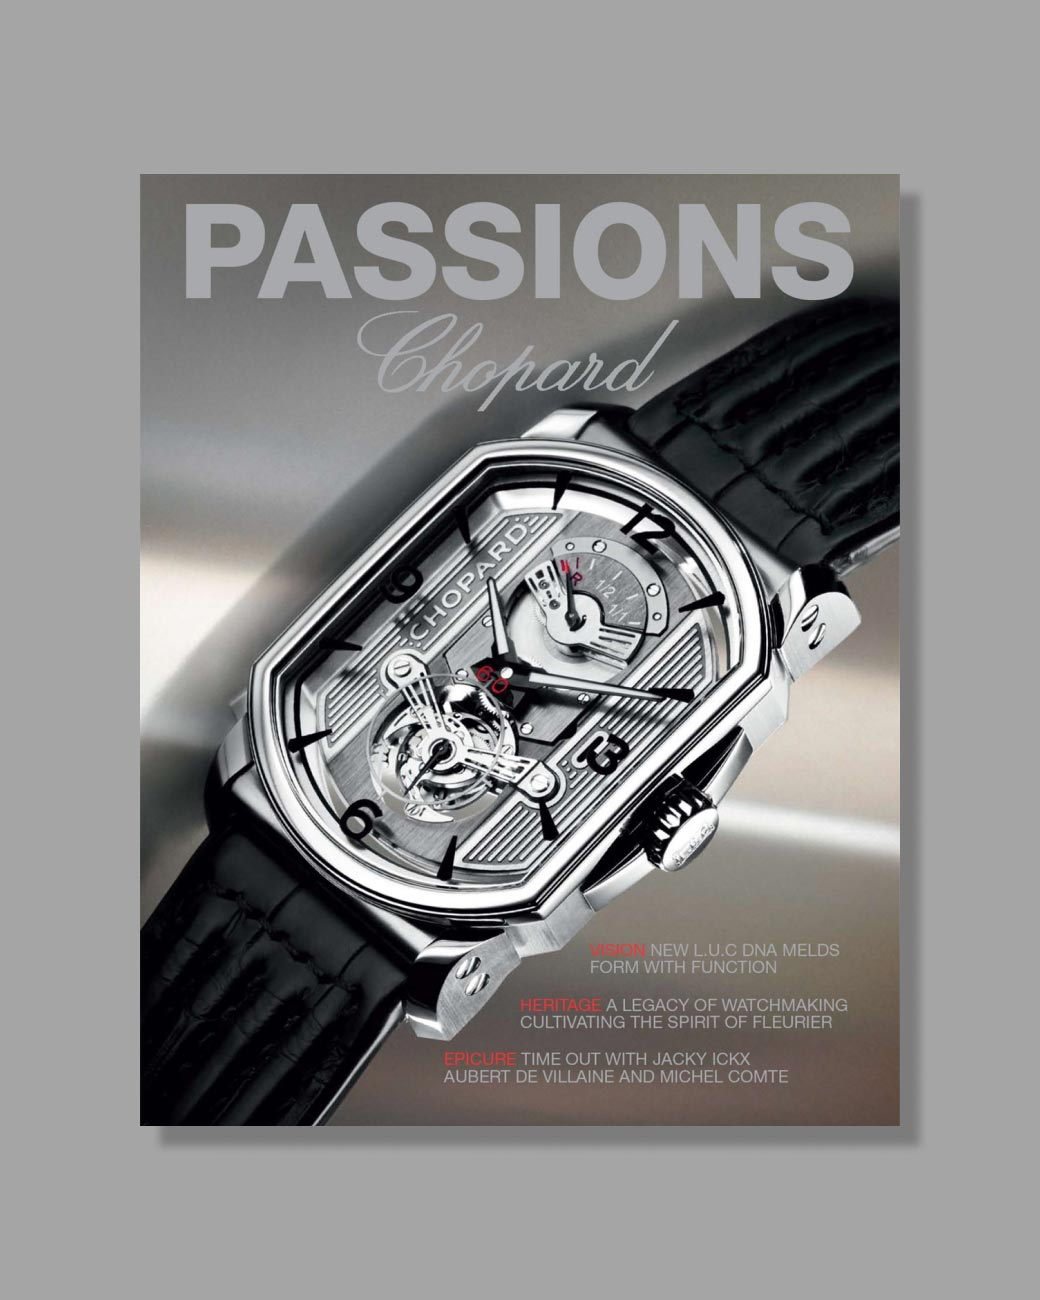 Chopard — Passions